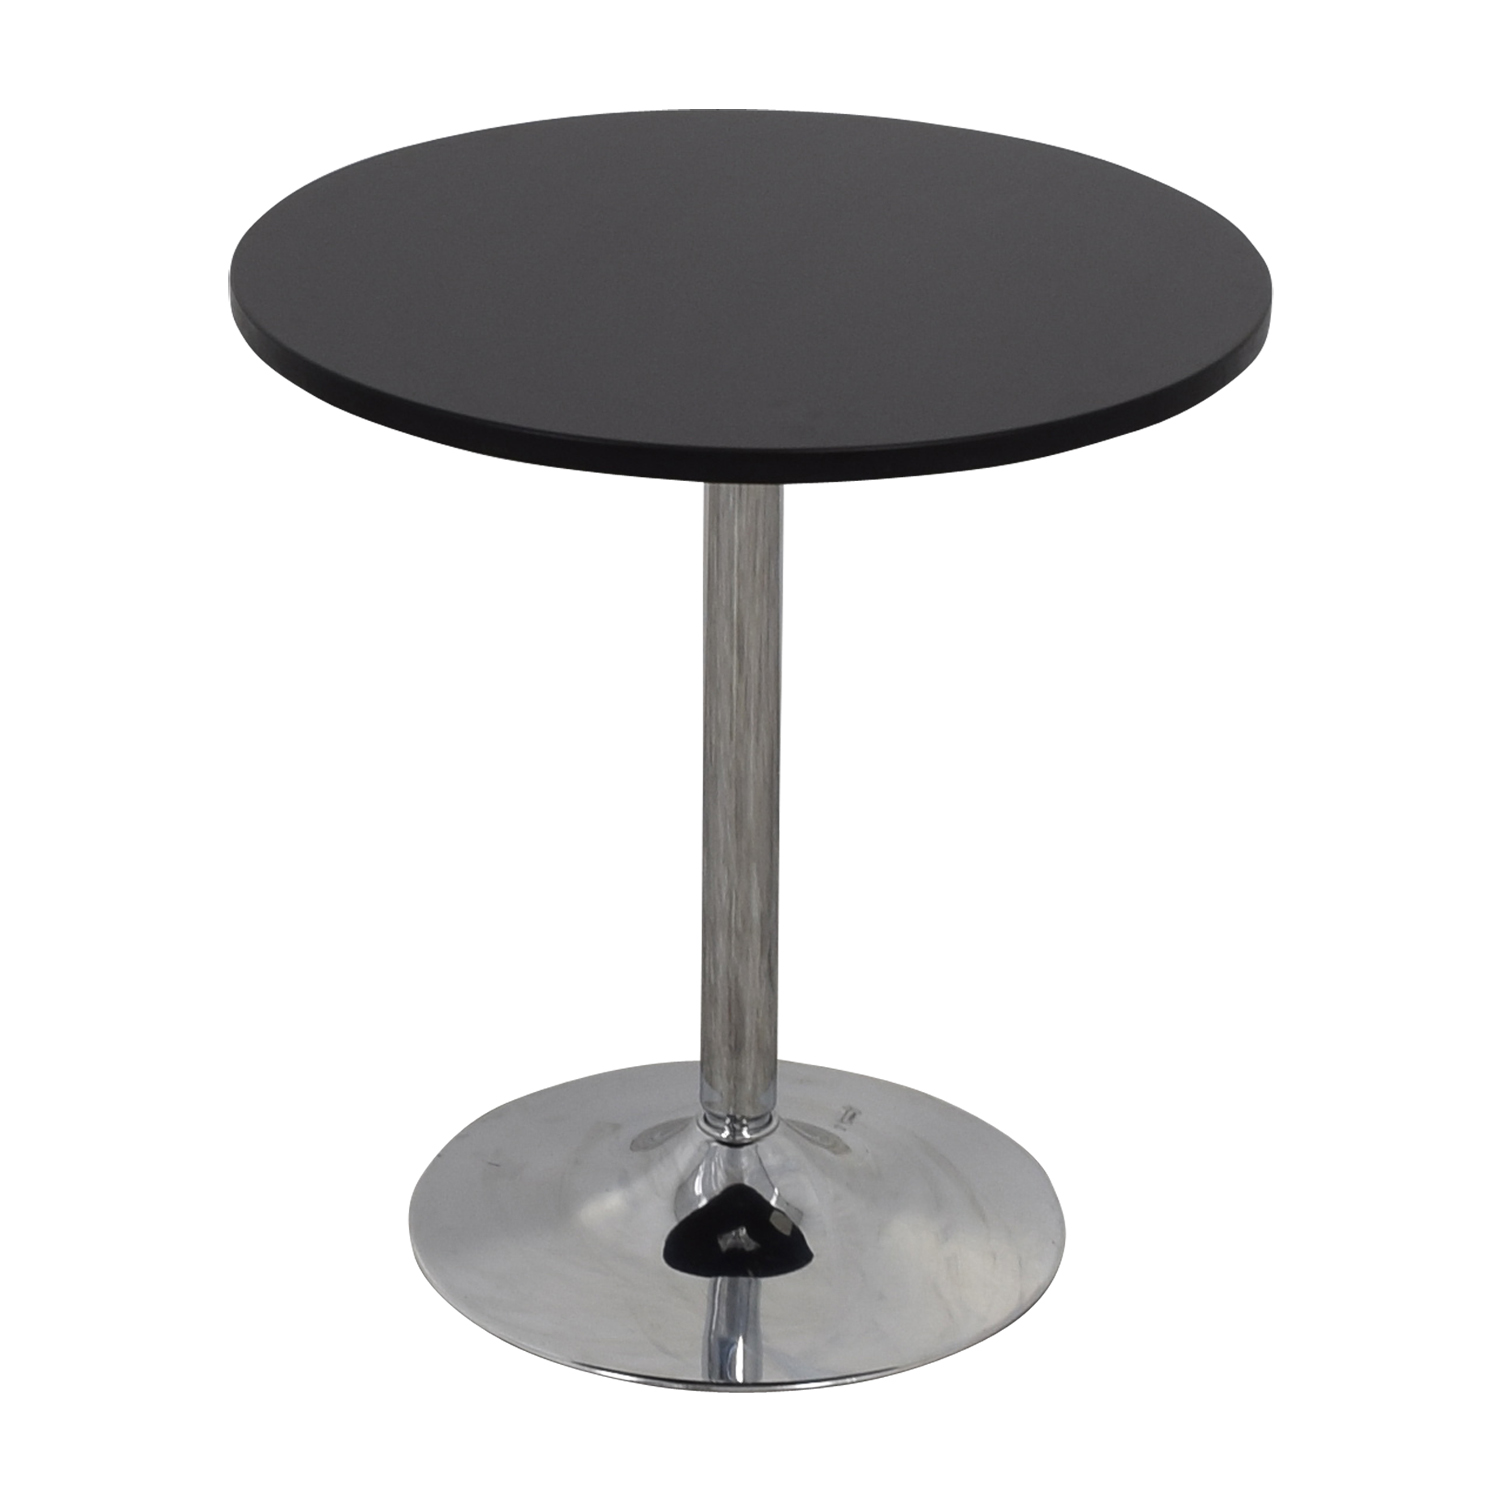 Pedestal Accent Table price